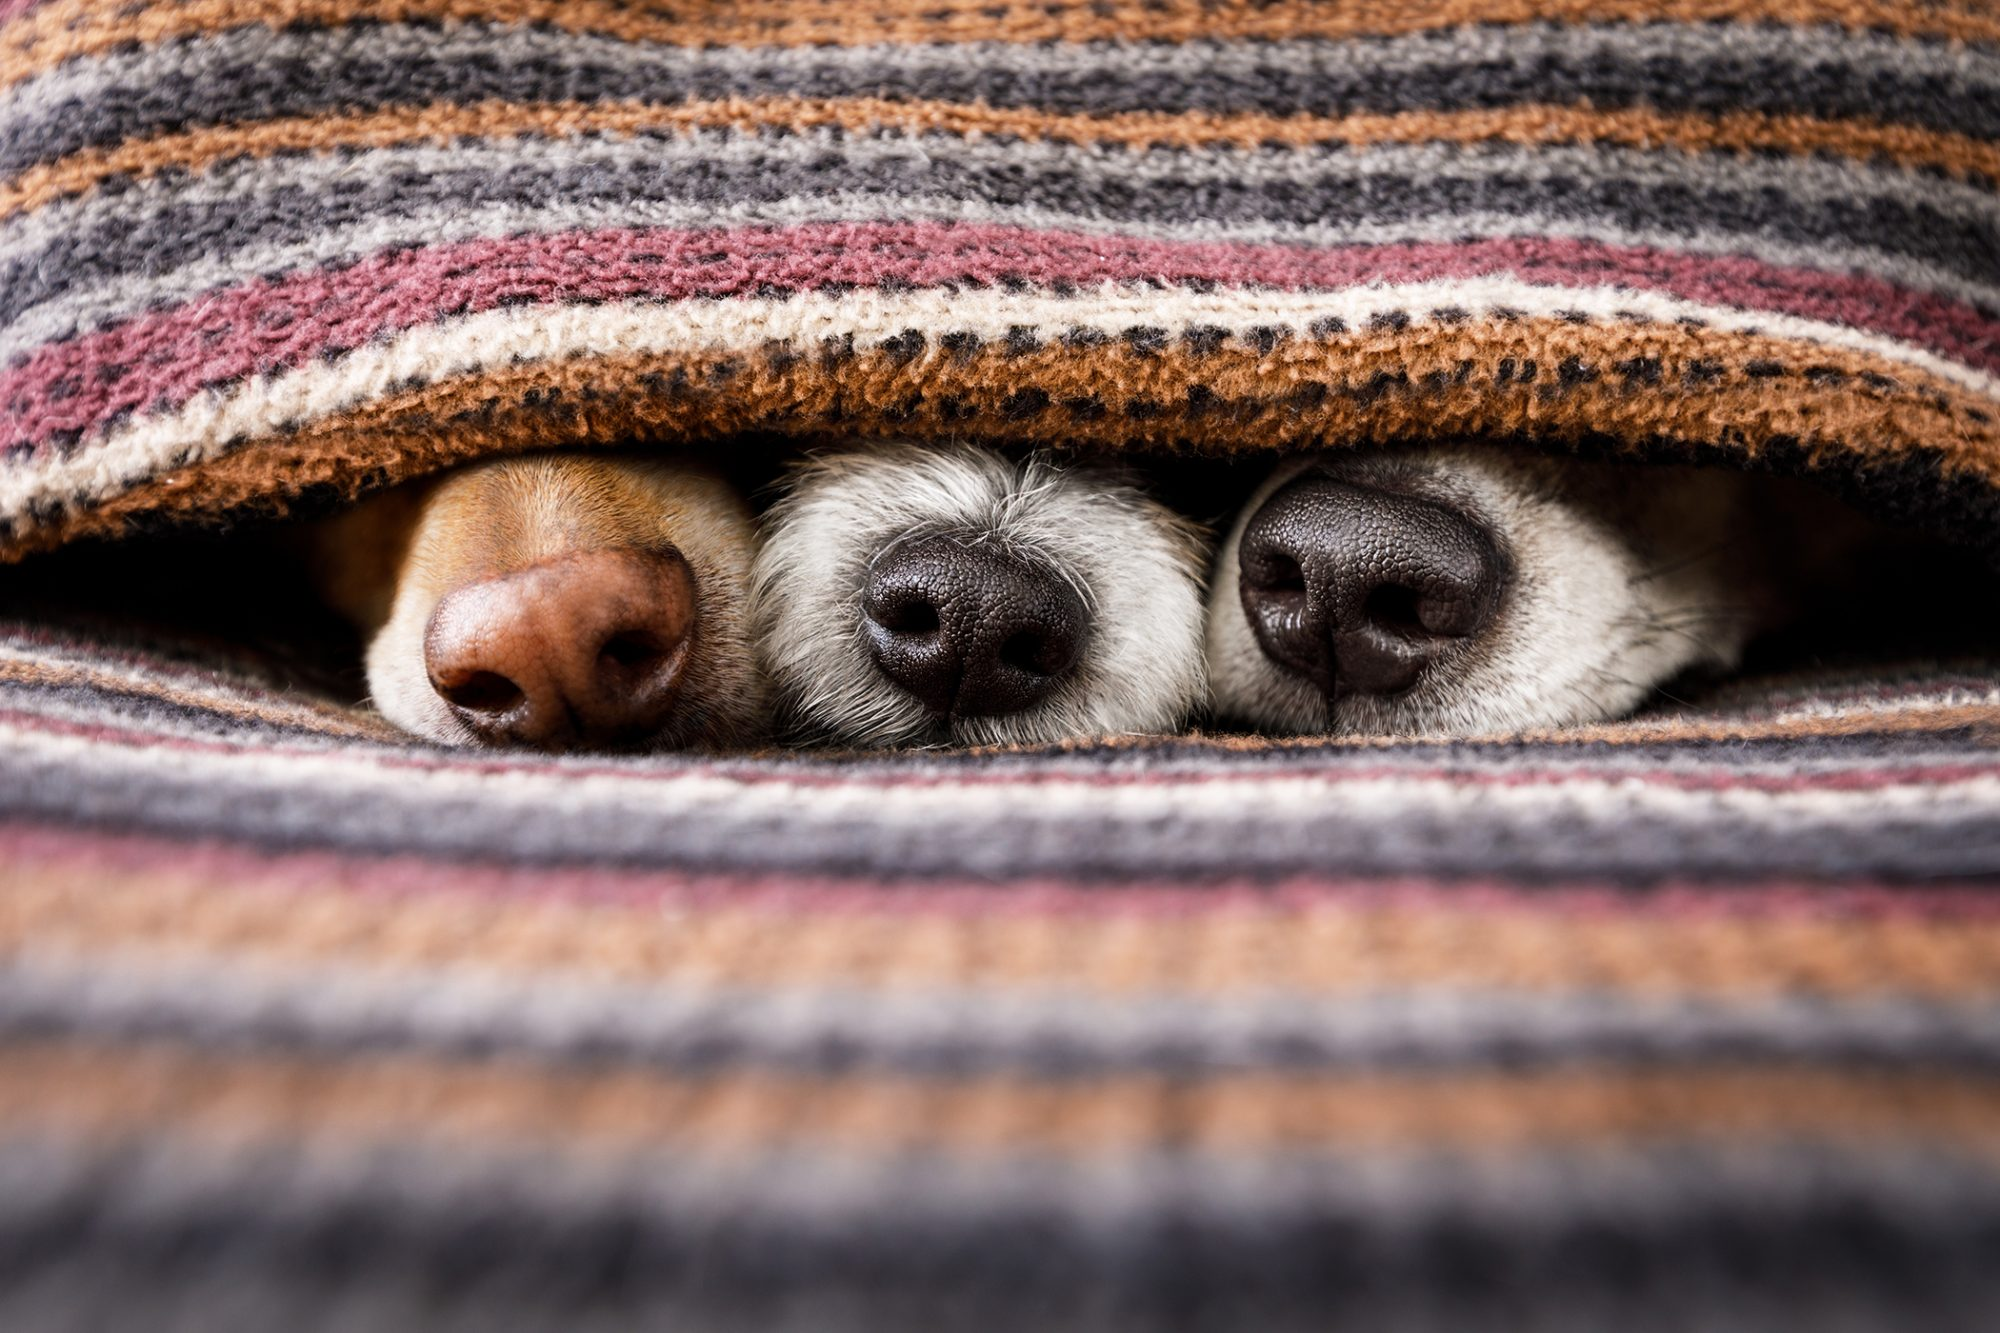 Three dog noses peek out from under a blanket